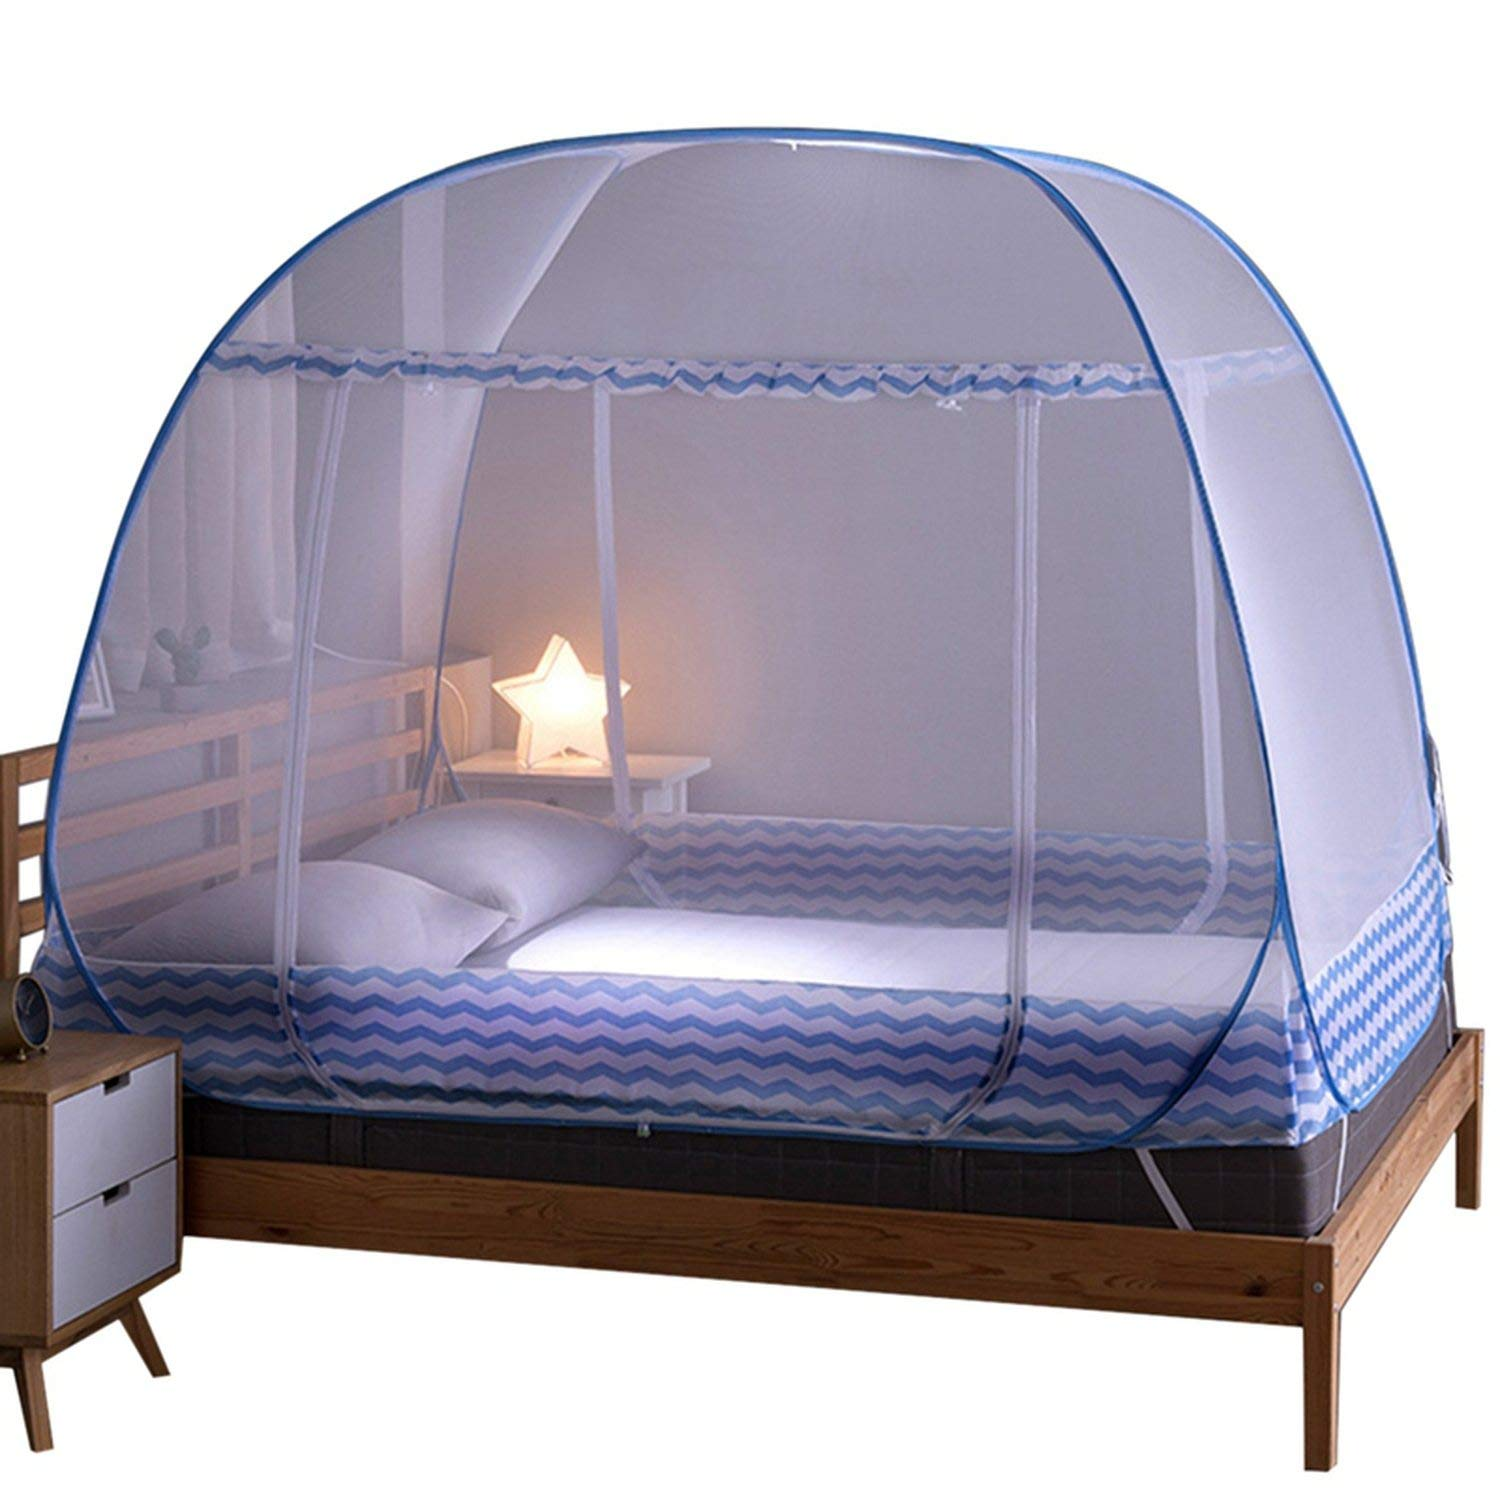 Mosquito Bed Netting Tent Durable Home Decor Student Bunk Breathable Mosquito Net Bed Net Mesh Tent,Blue,M